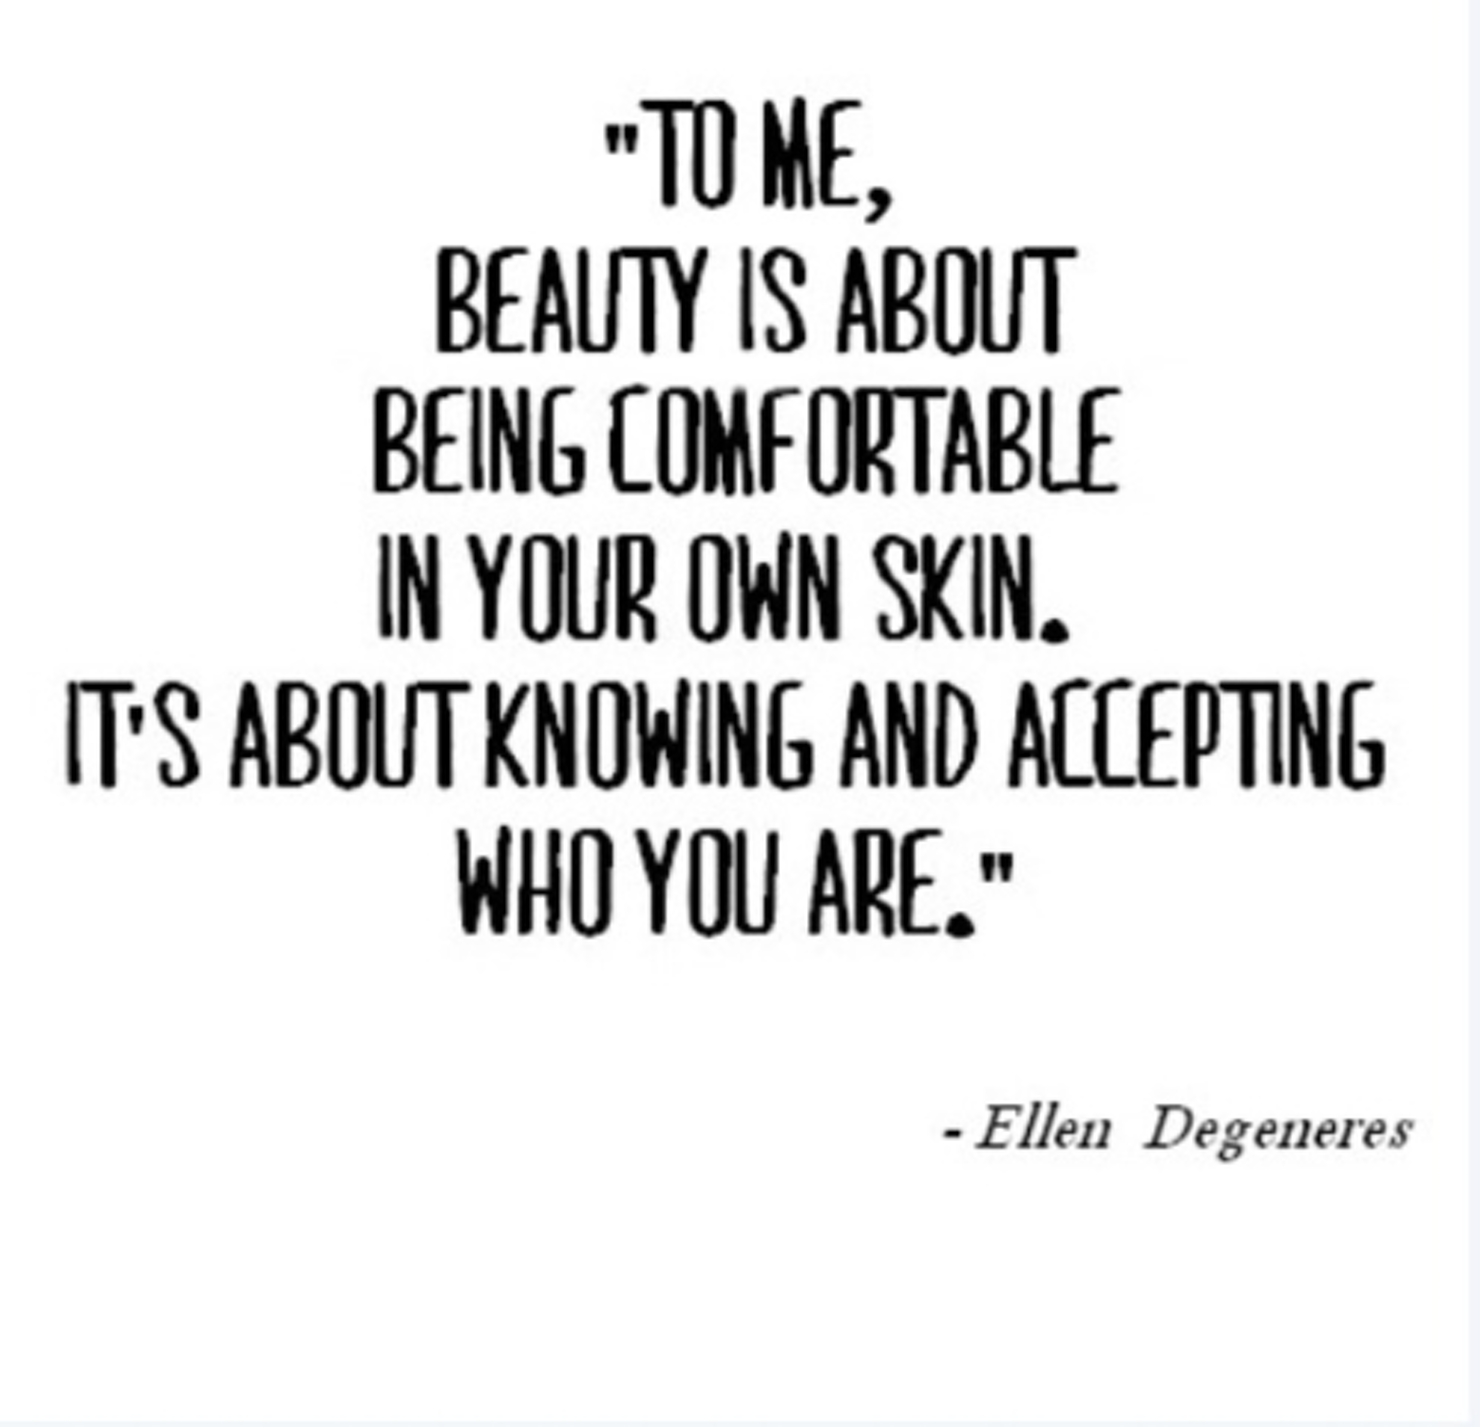 Body Image Quotes Delectable 20 Rad Body Image Quotes To Inspire All The Feels  Pinterest  Body